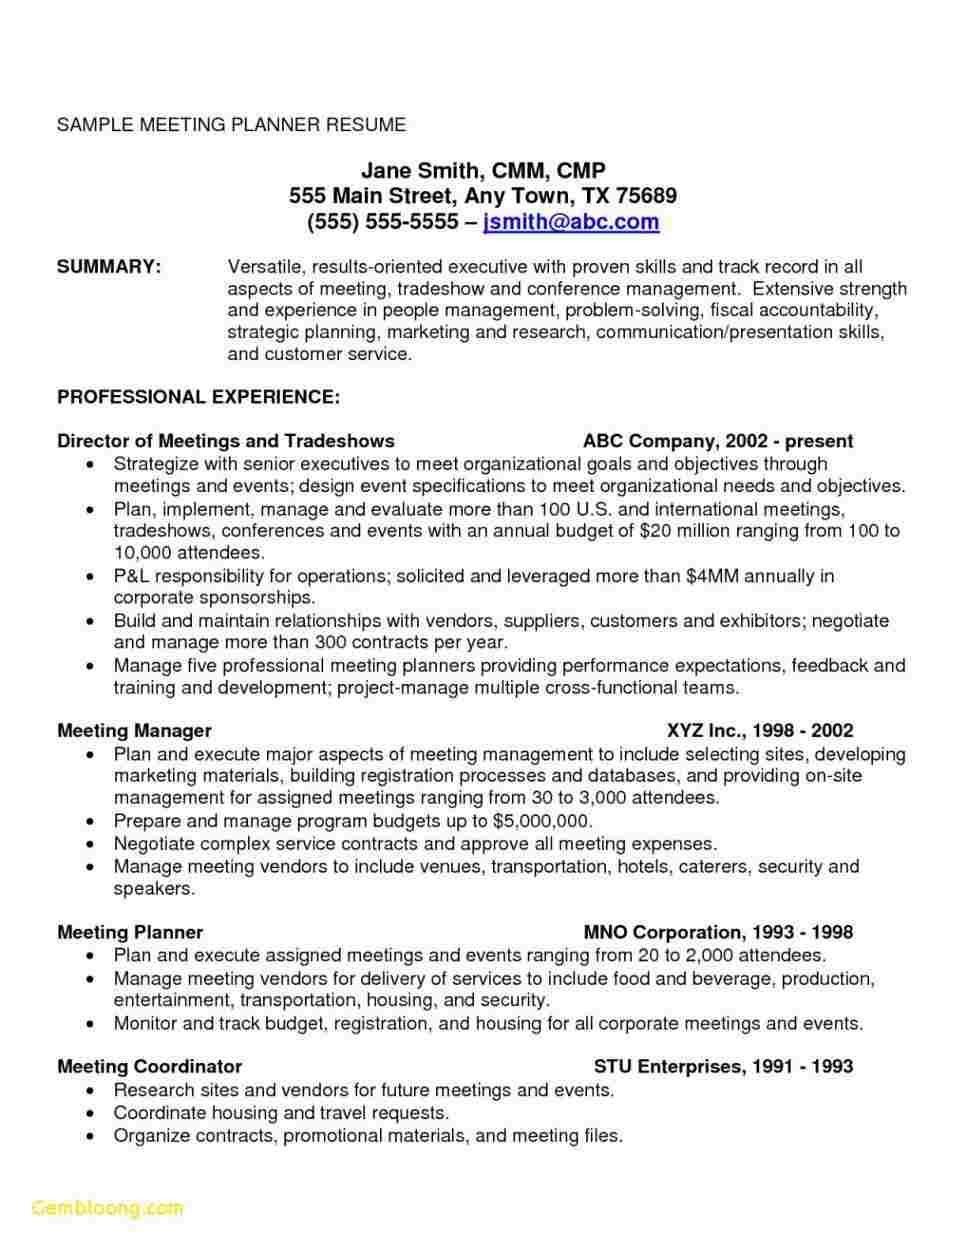 Sample Resume with Onsite Work Experience 65 Cool Collection Of Sample Resume Onsite Experience Meeting ...